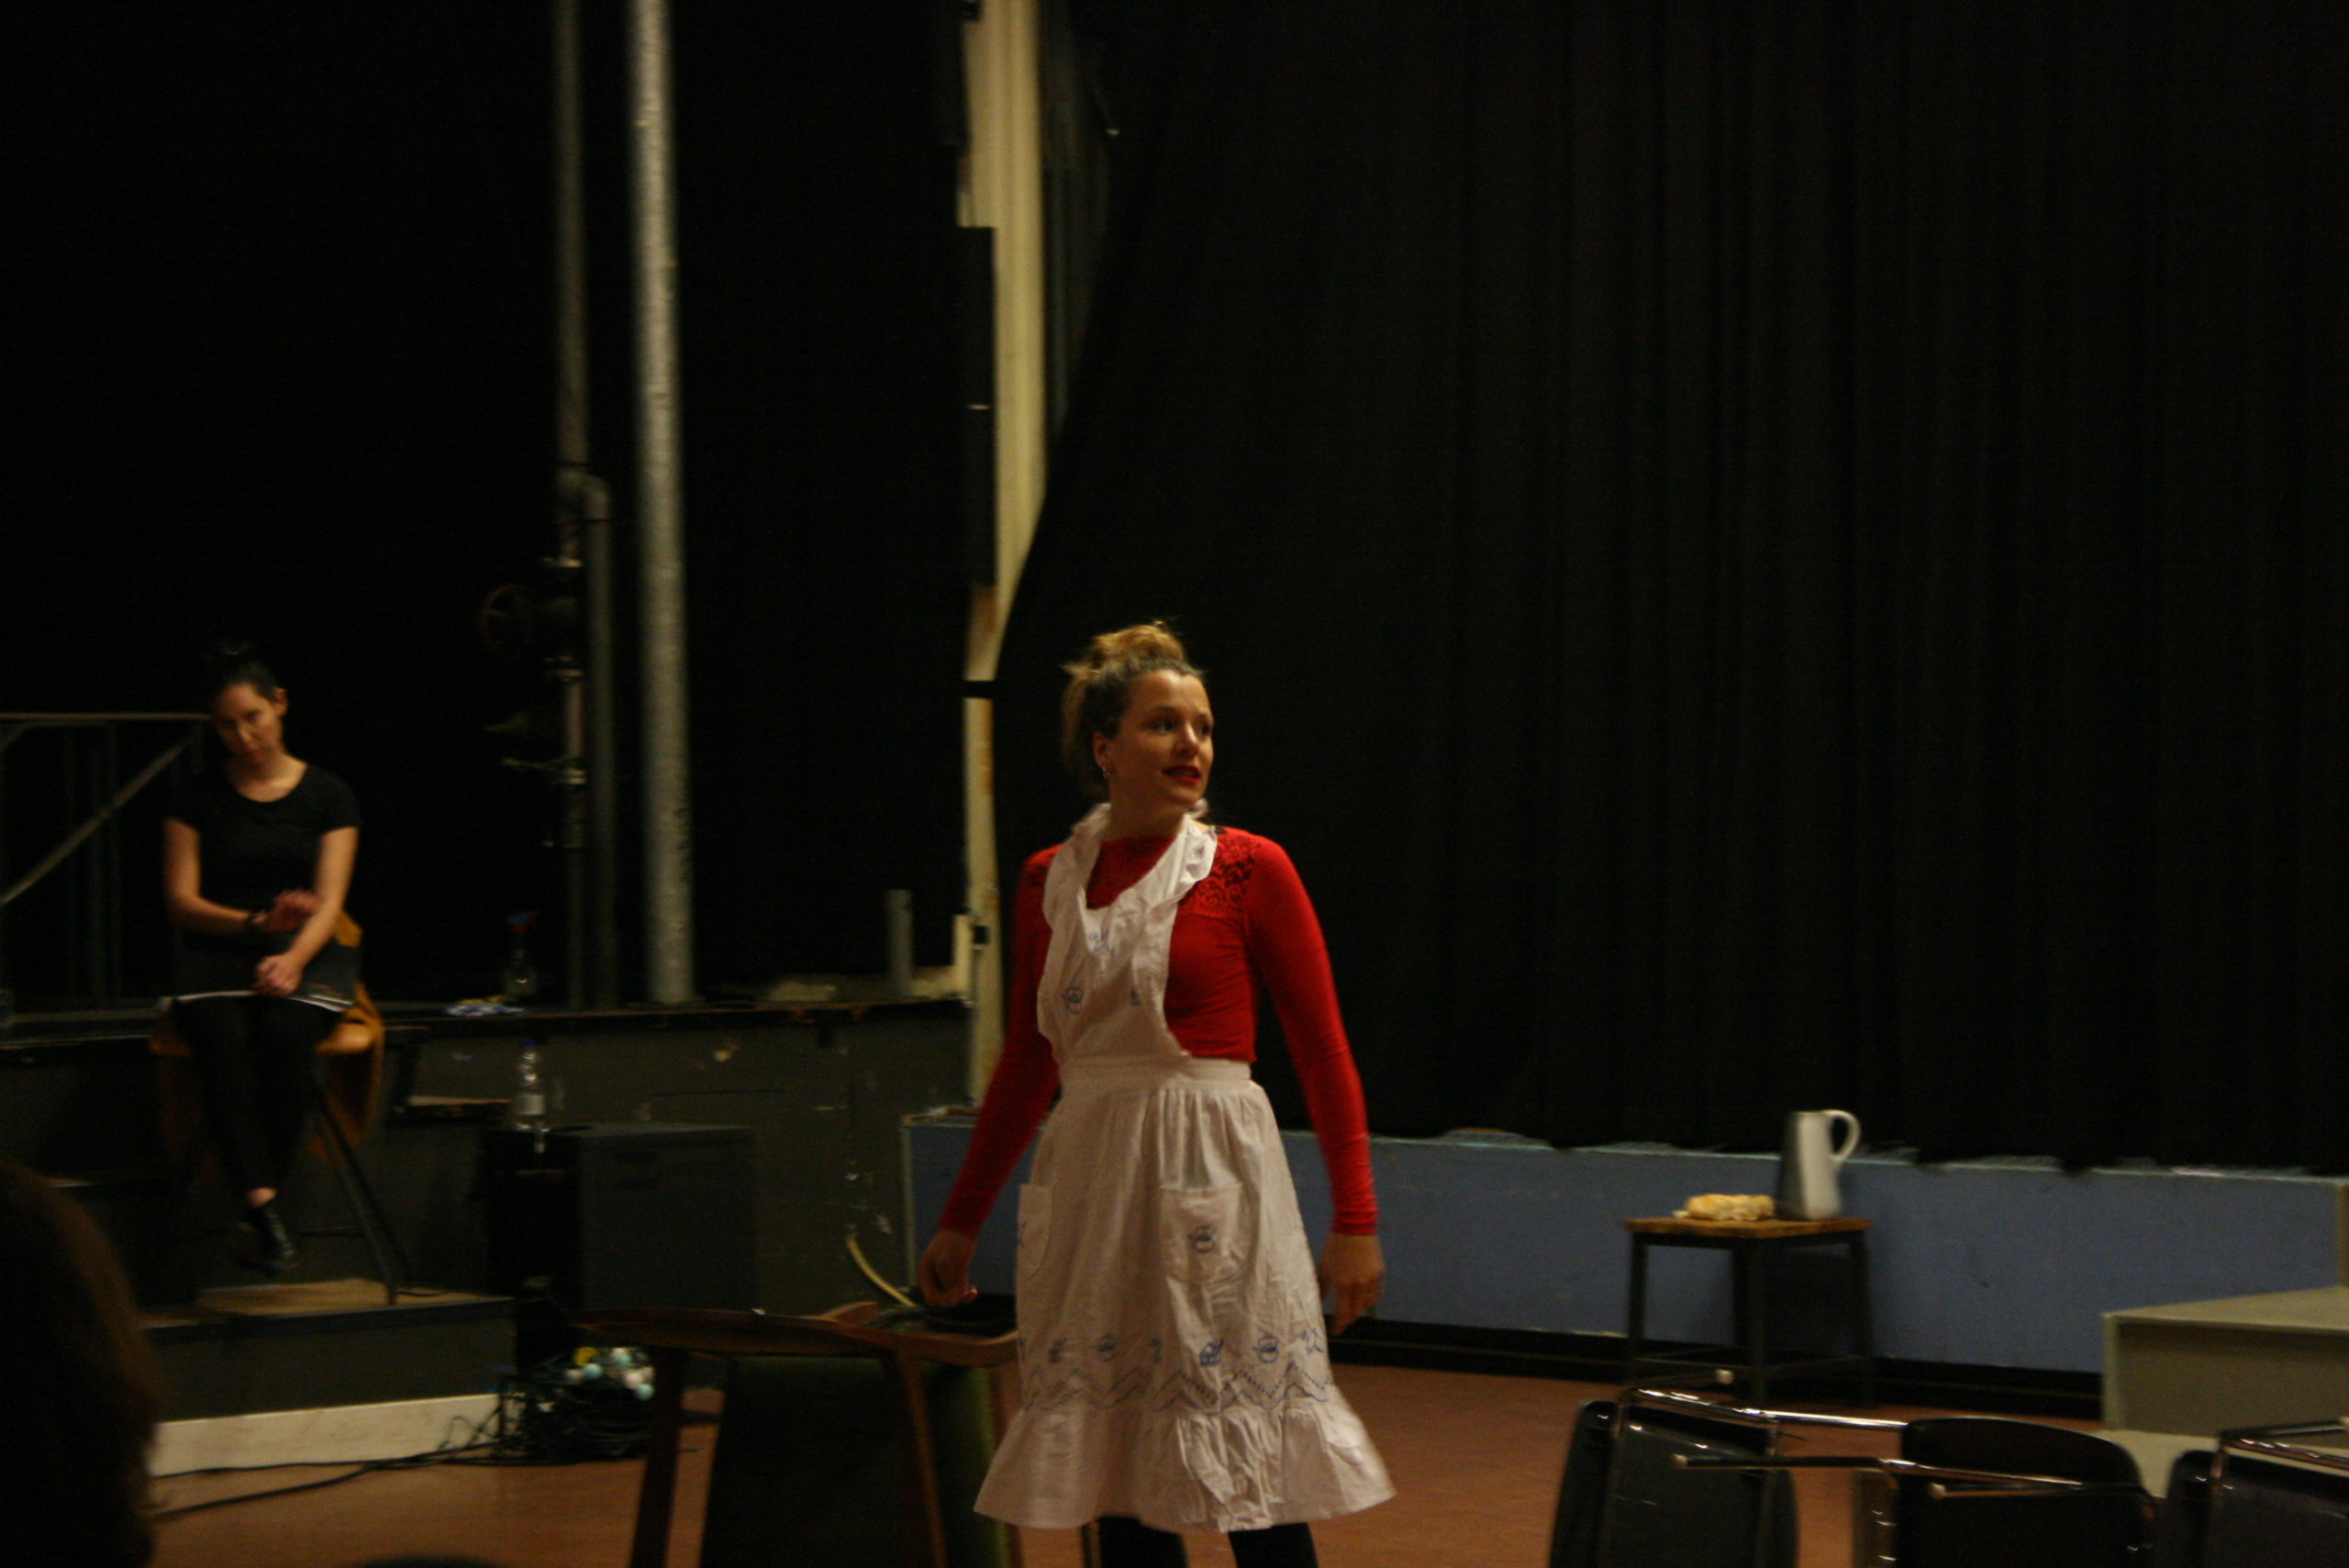 """Photo from the show """"Skin of our Teeth"""". A female actor on stage dressed as a maid, looking like she is responding to someone"""